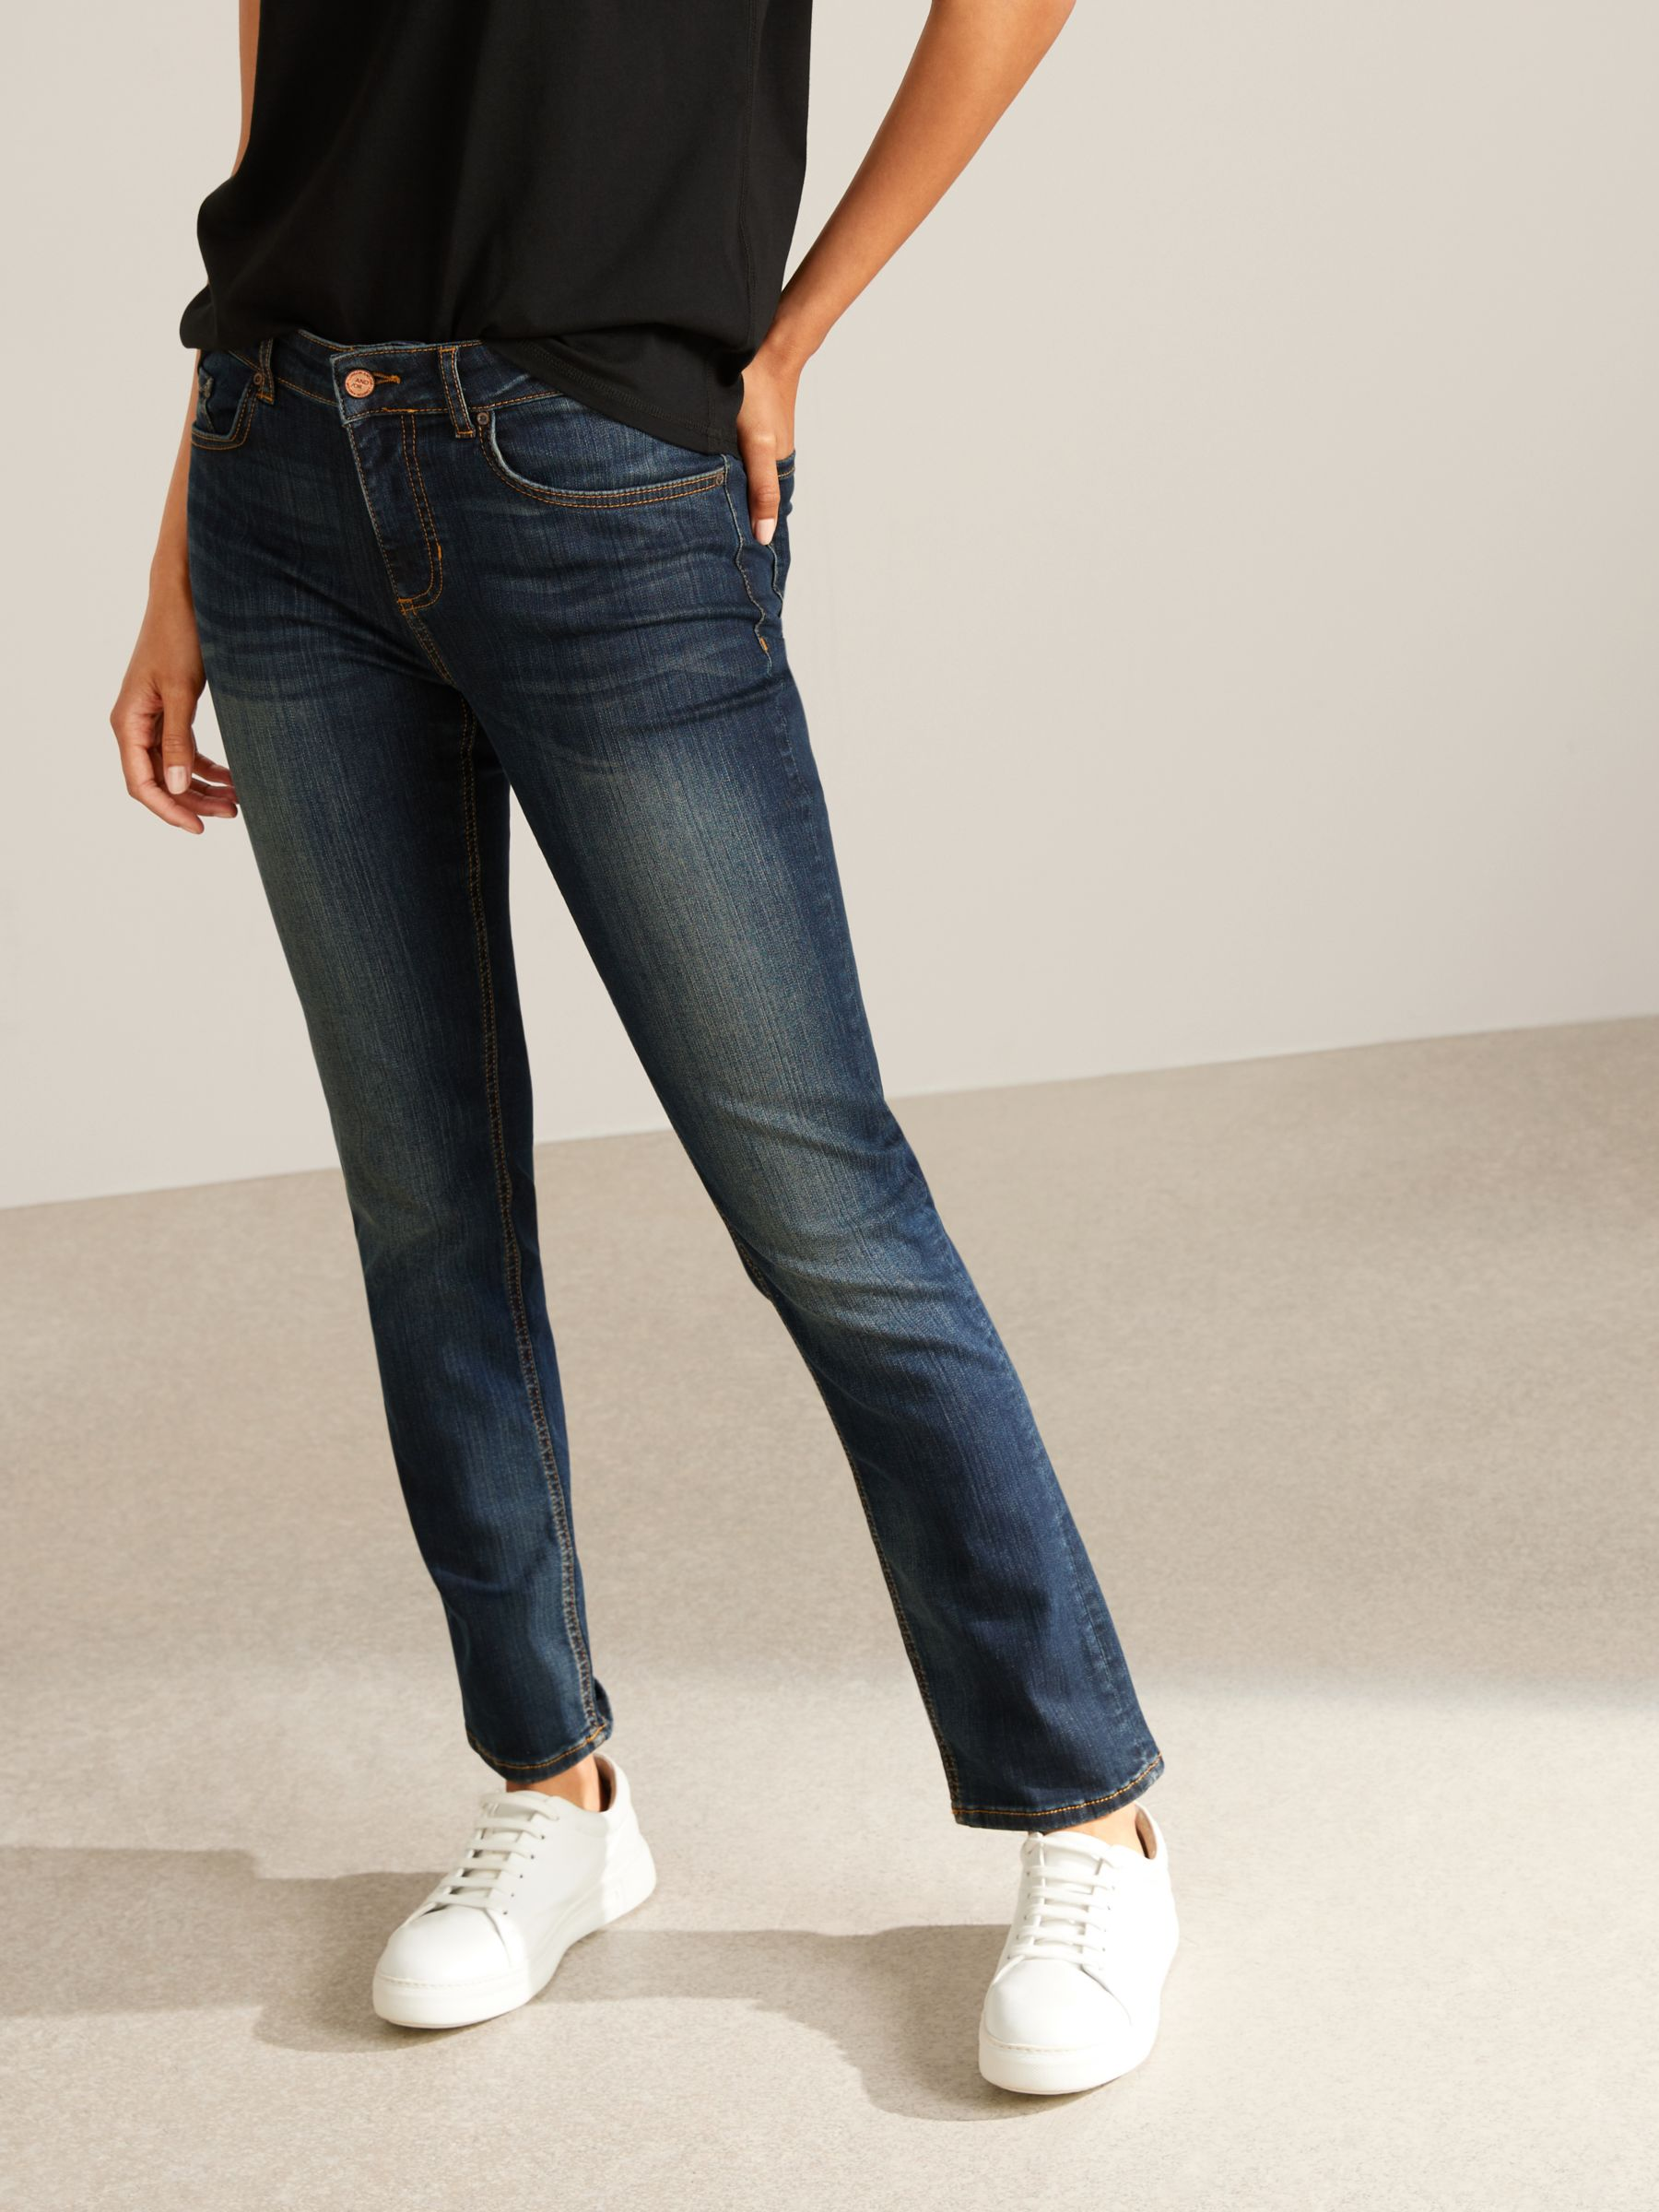 Buy AND/OR Silverlake Straight Leg Jeans, Deja Blue, 26 Online at johnlewis.com